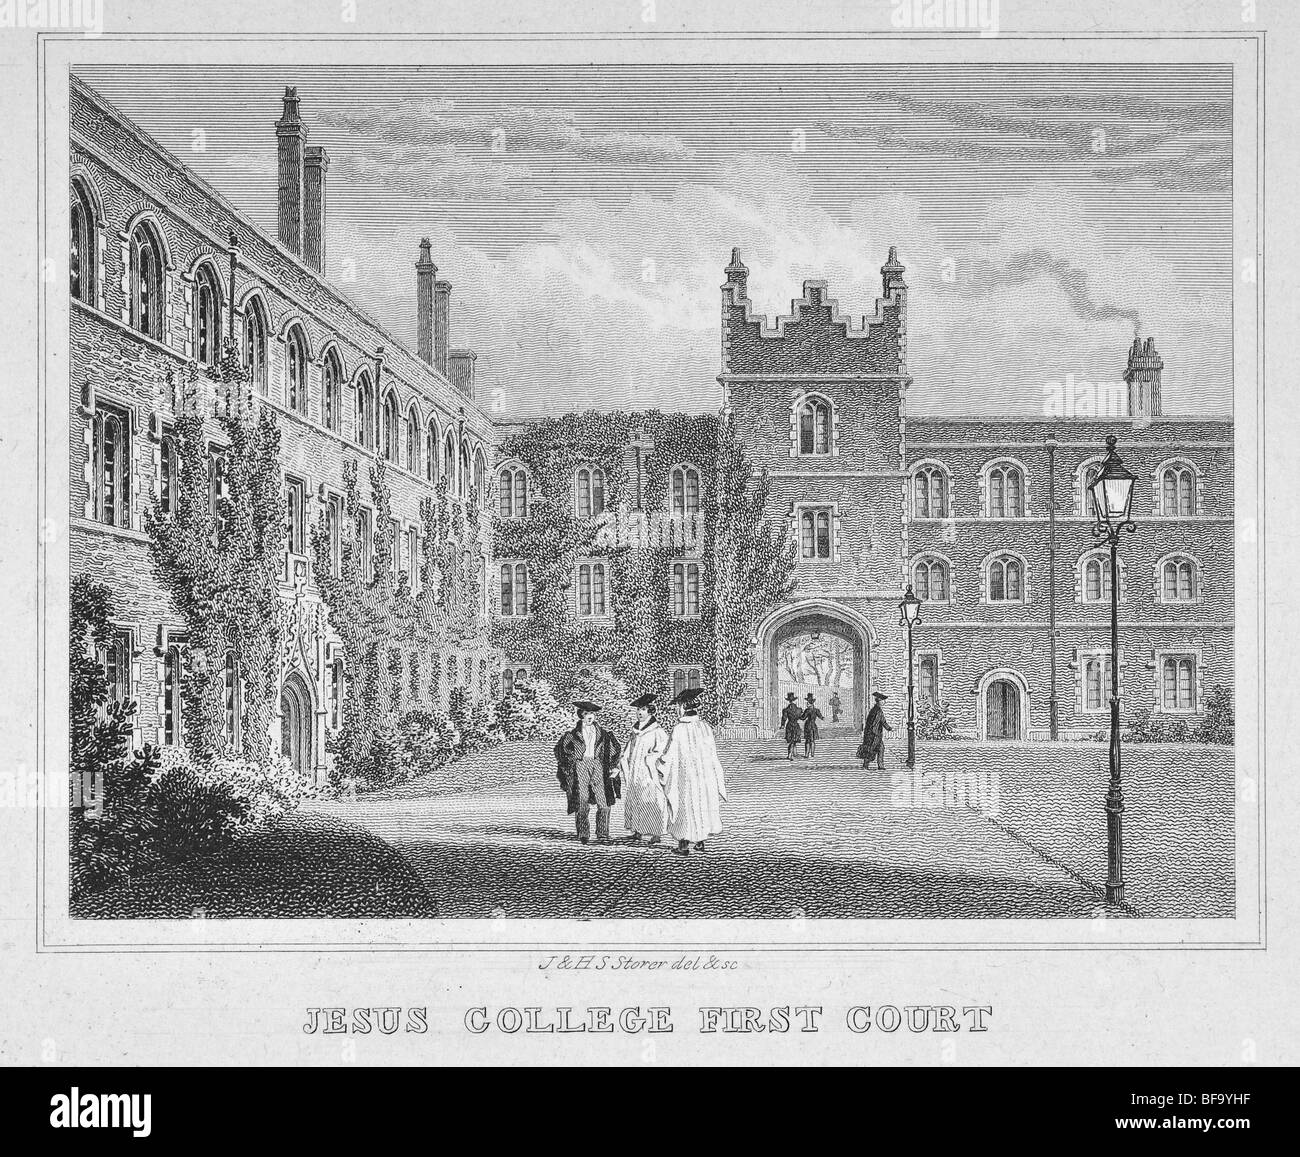 Jesus College, Cambridge – First Court - Stock Image